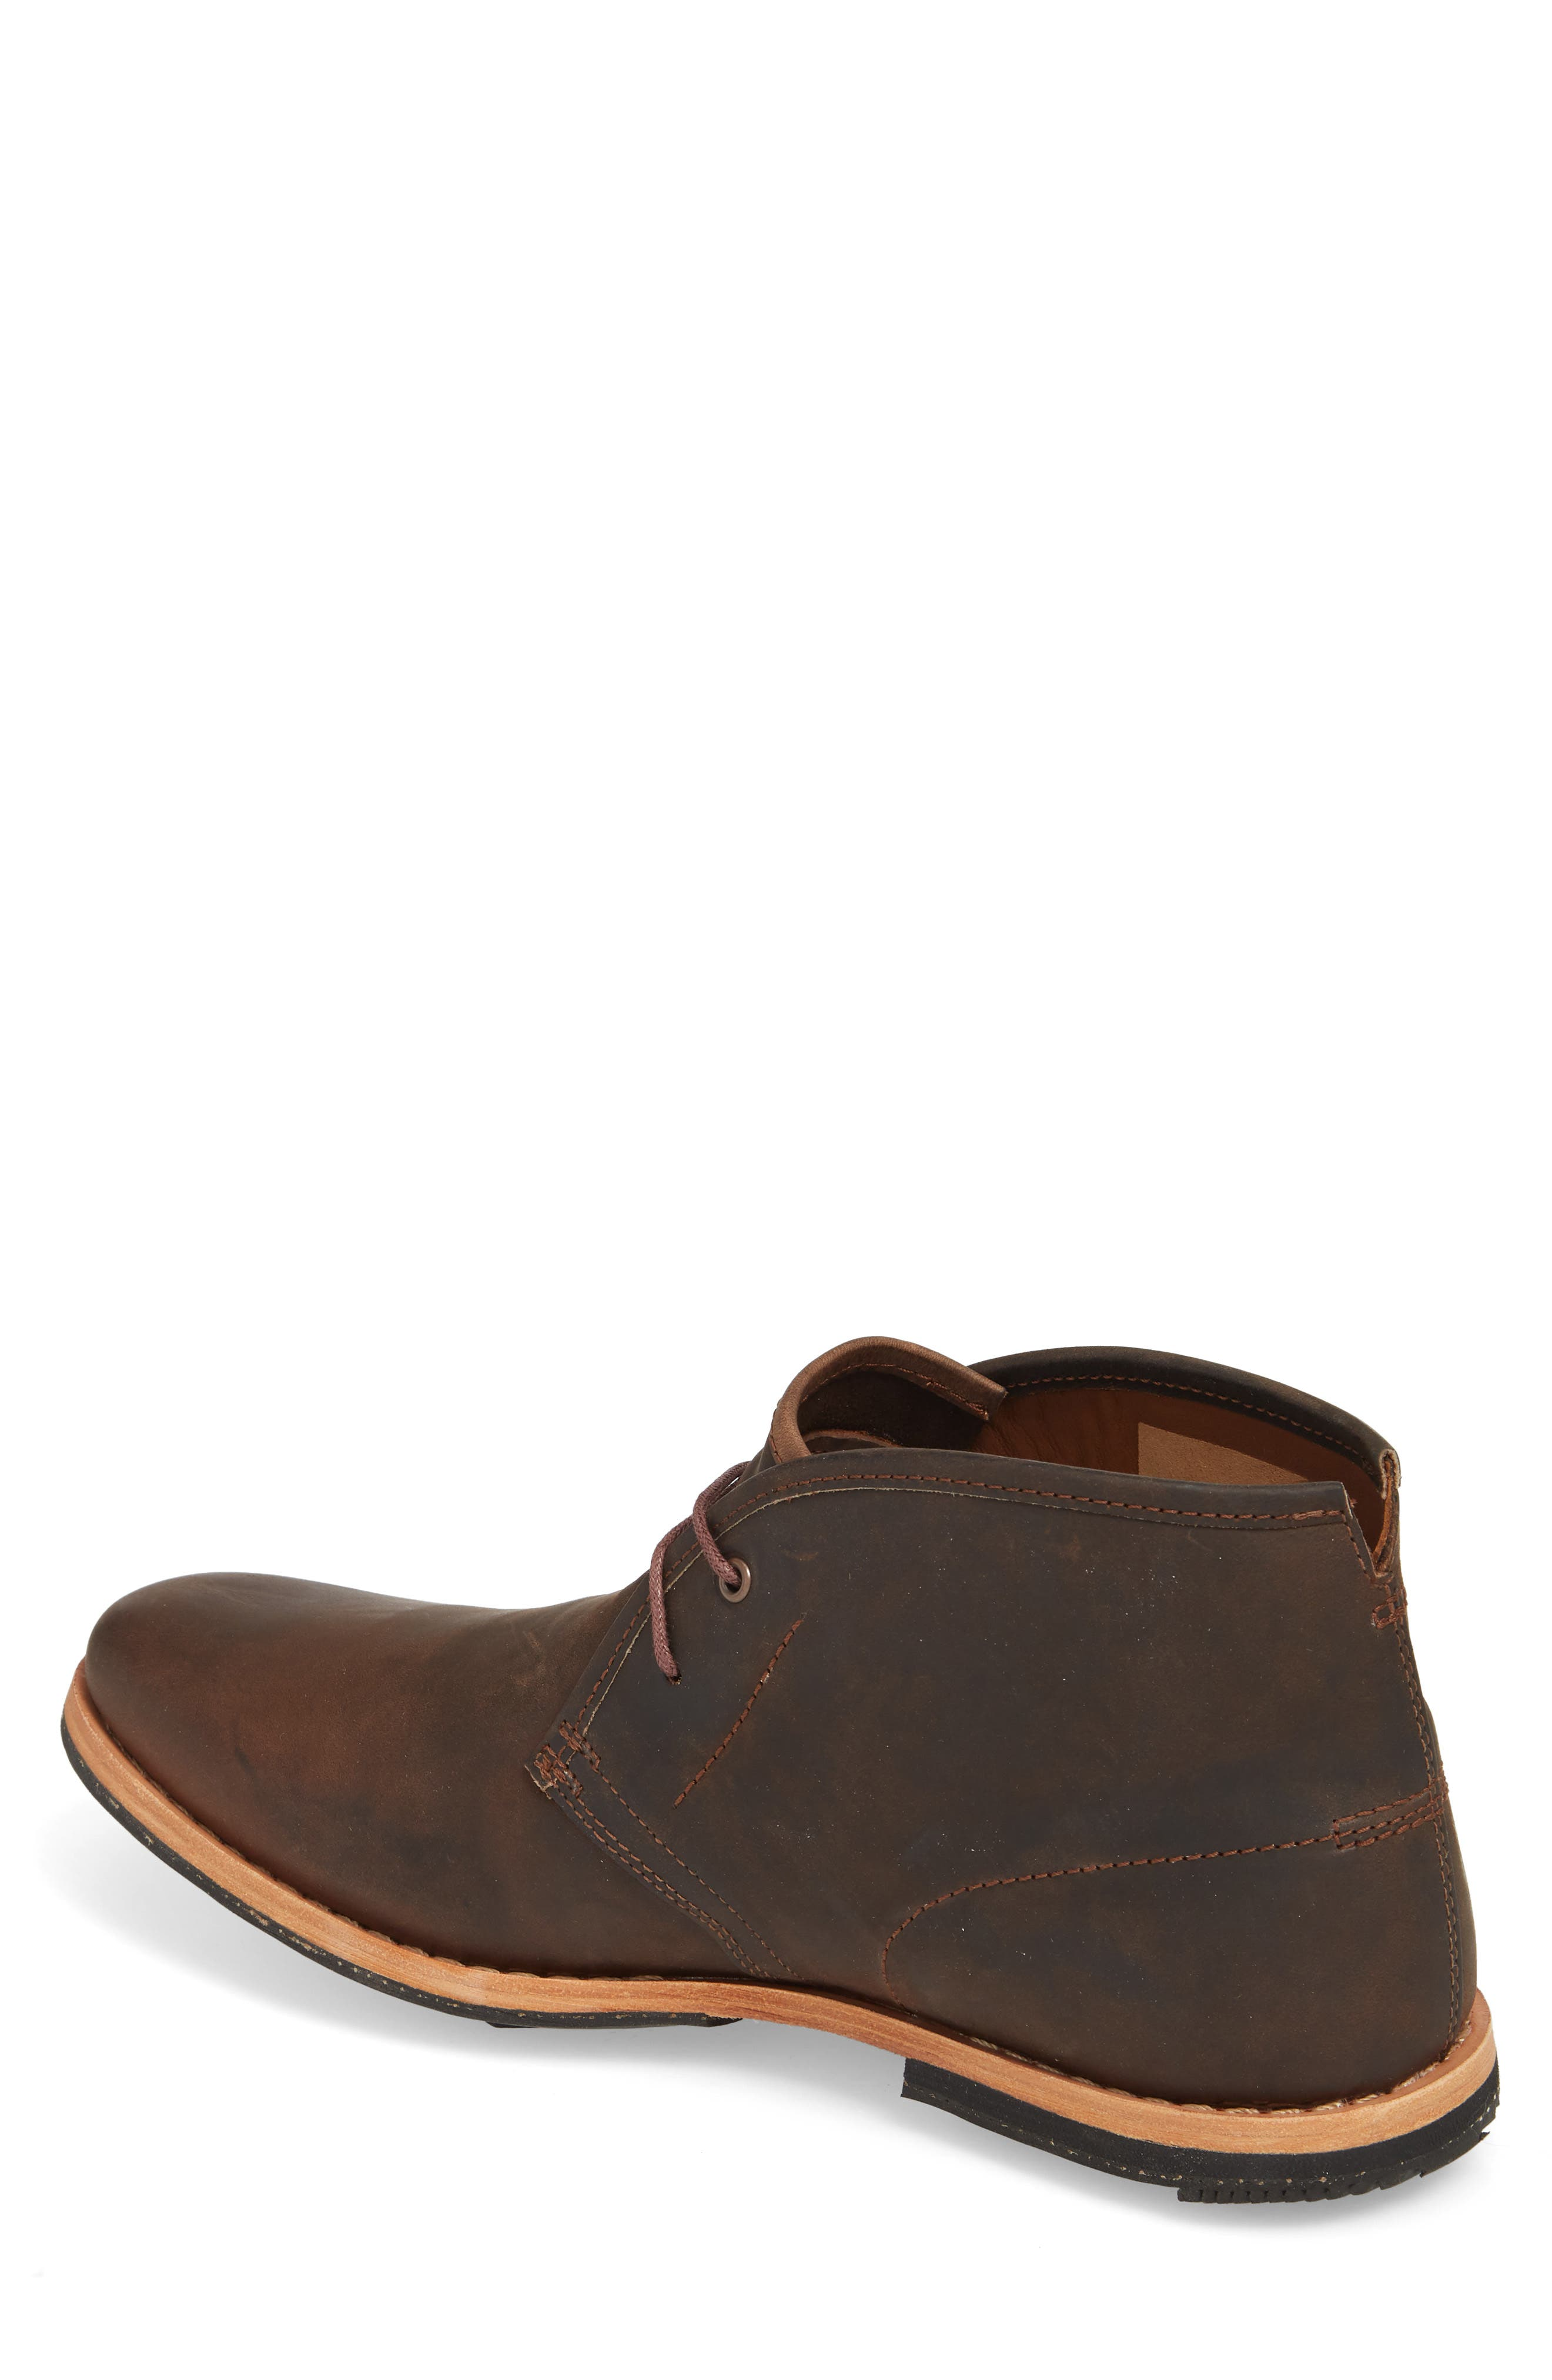 Wodehouse History Chukka Boot,                             Alternate thumbnail 2, color,                             Brown Leather